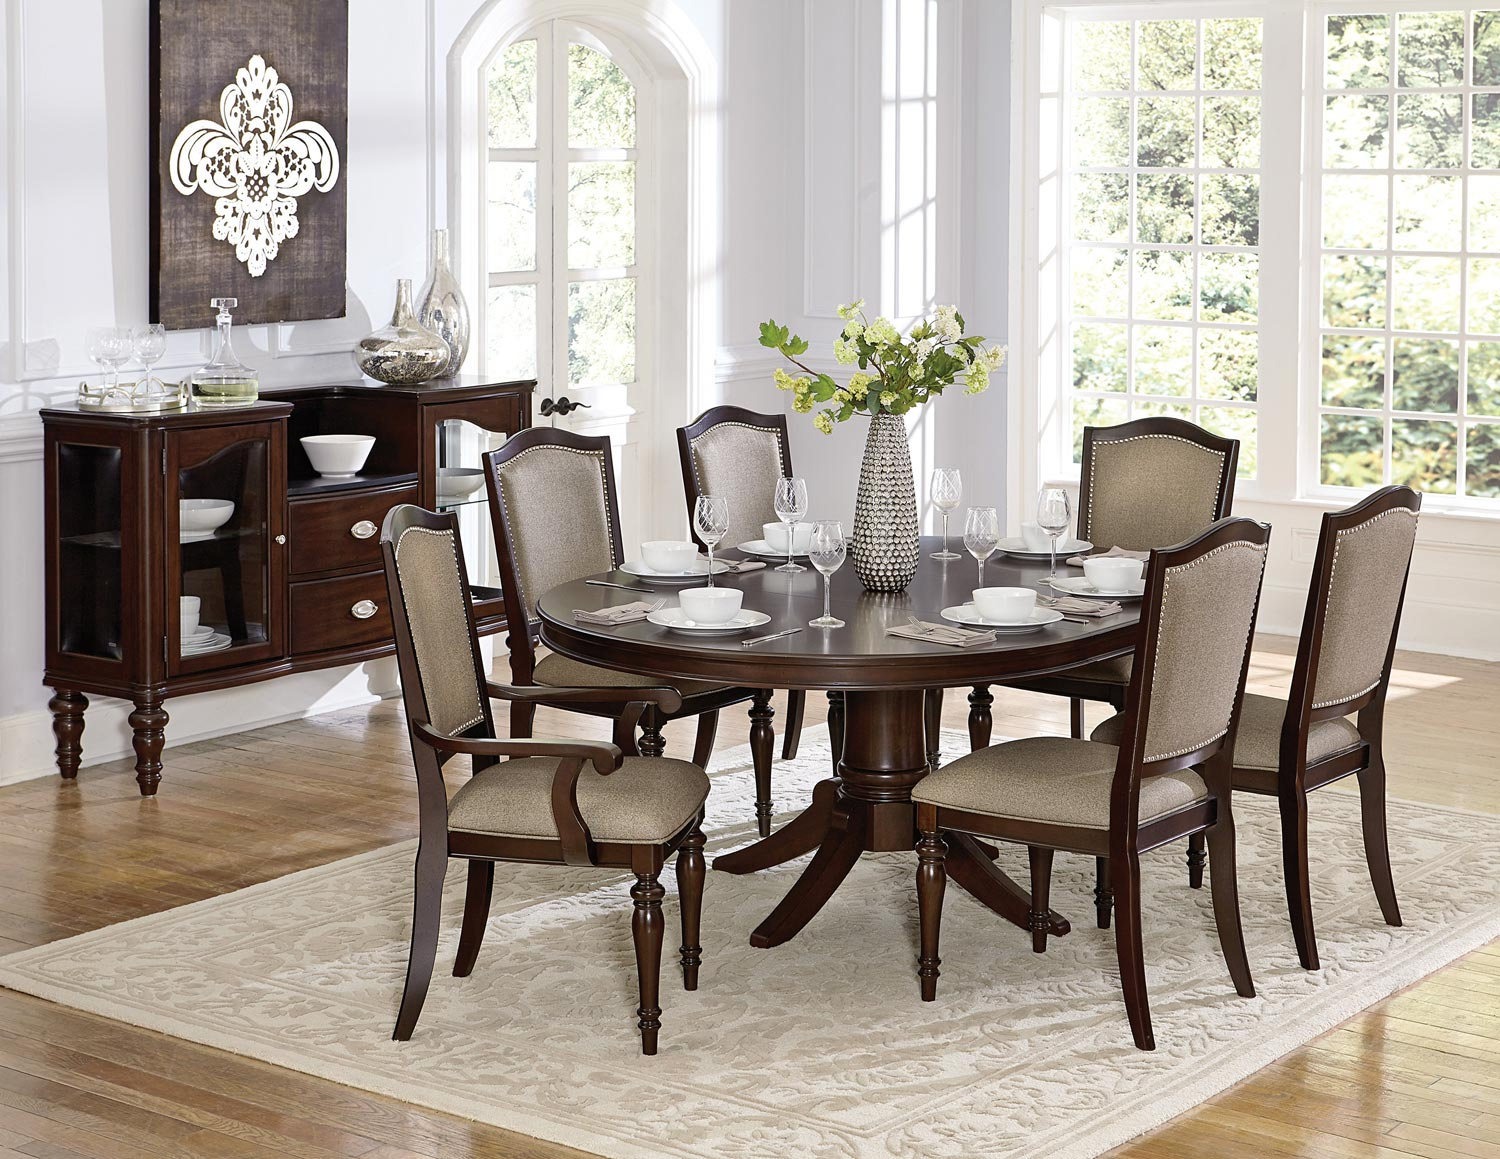 Homelegance Marston Pedestal Dining Set - Dark Cherry